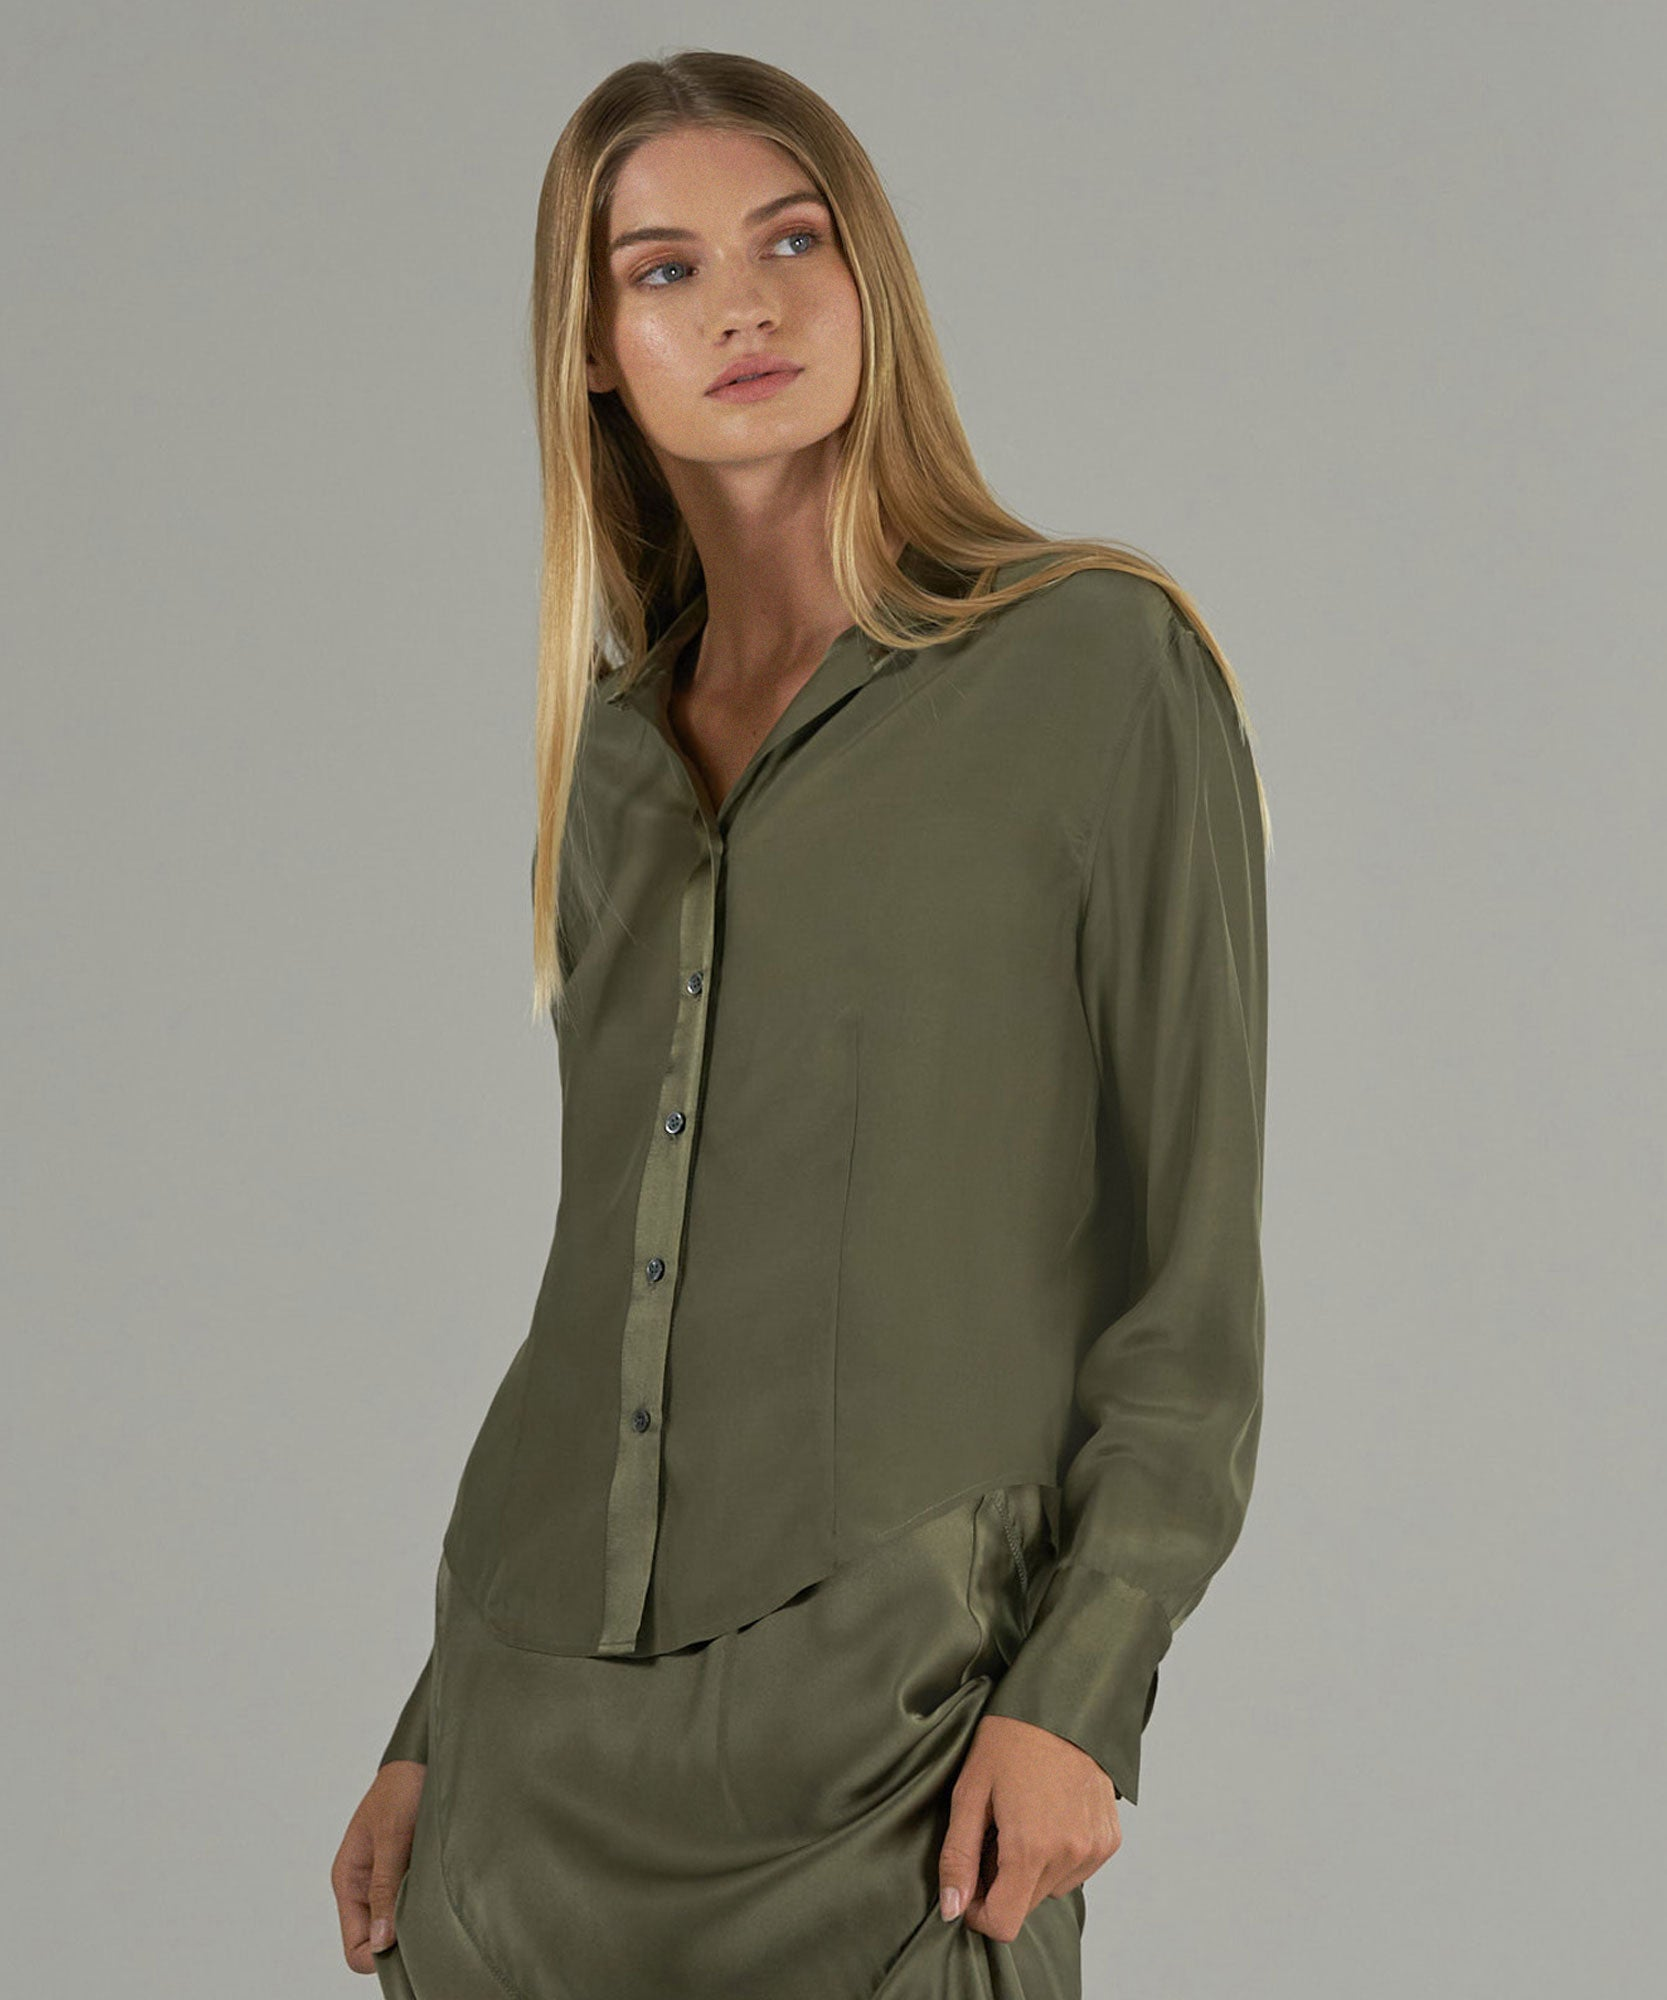 Army Silk Charmeuse Button Down - Women's Top by ATM Anthony Thomas Melillo